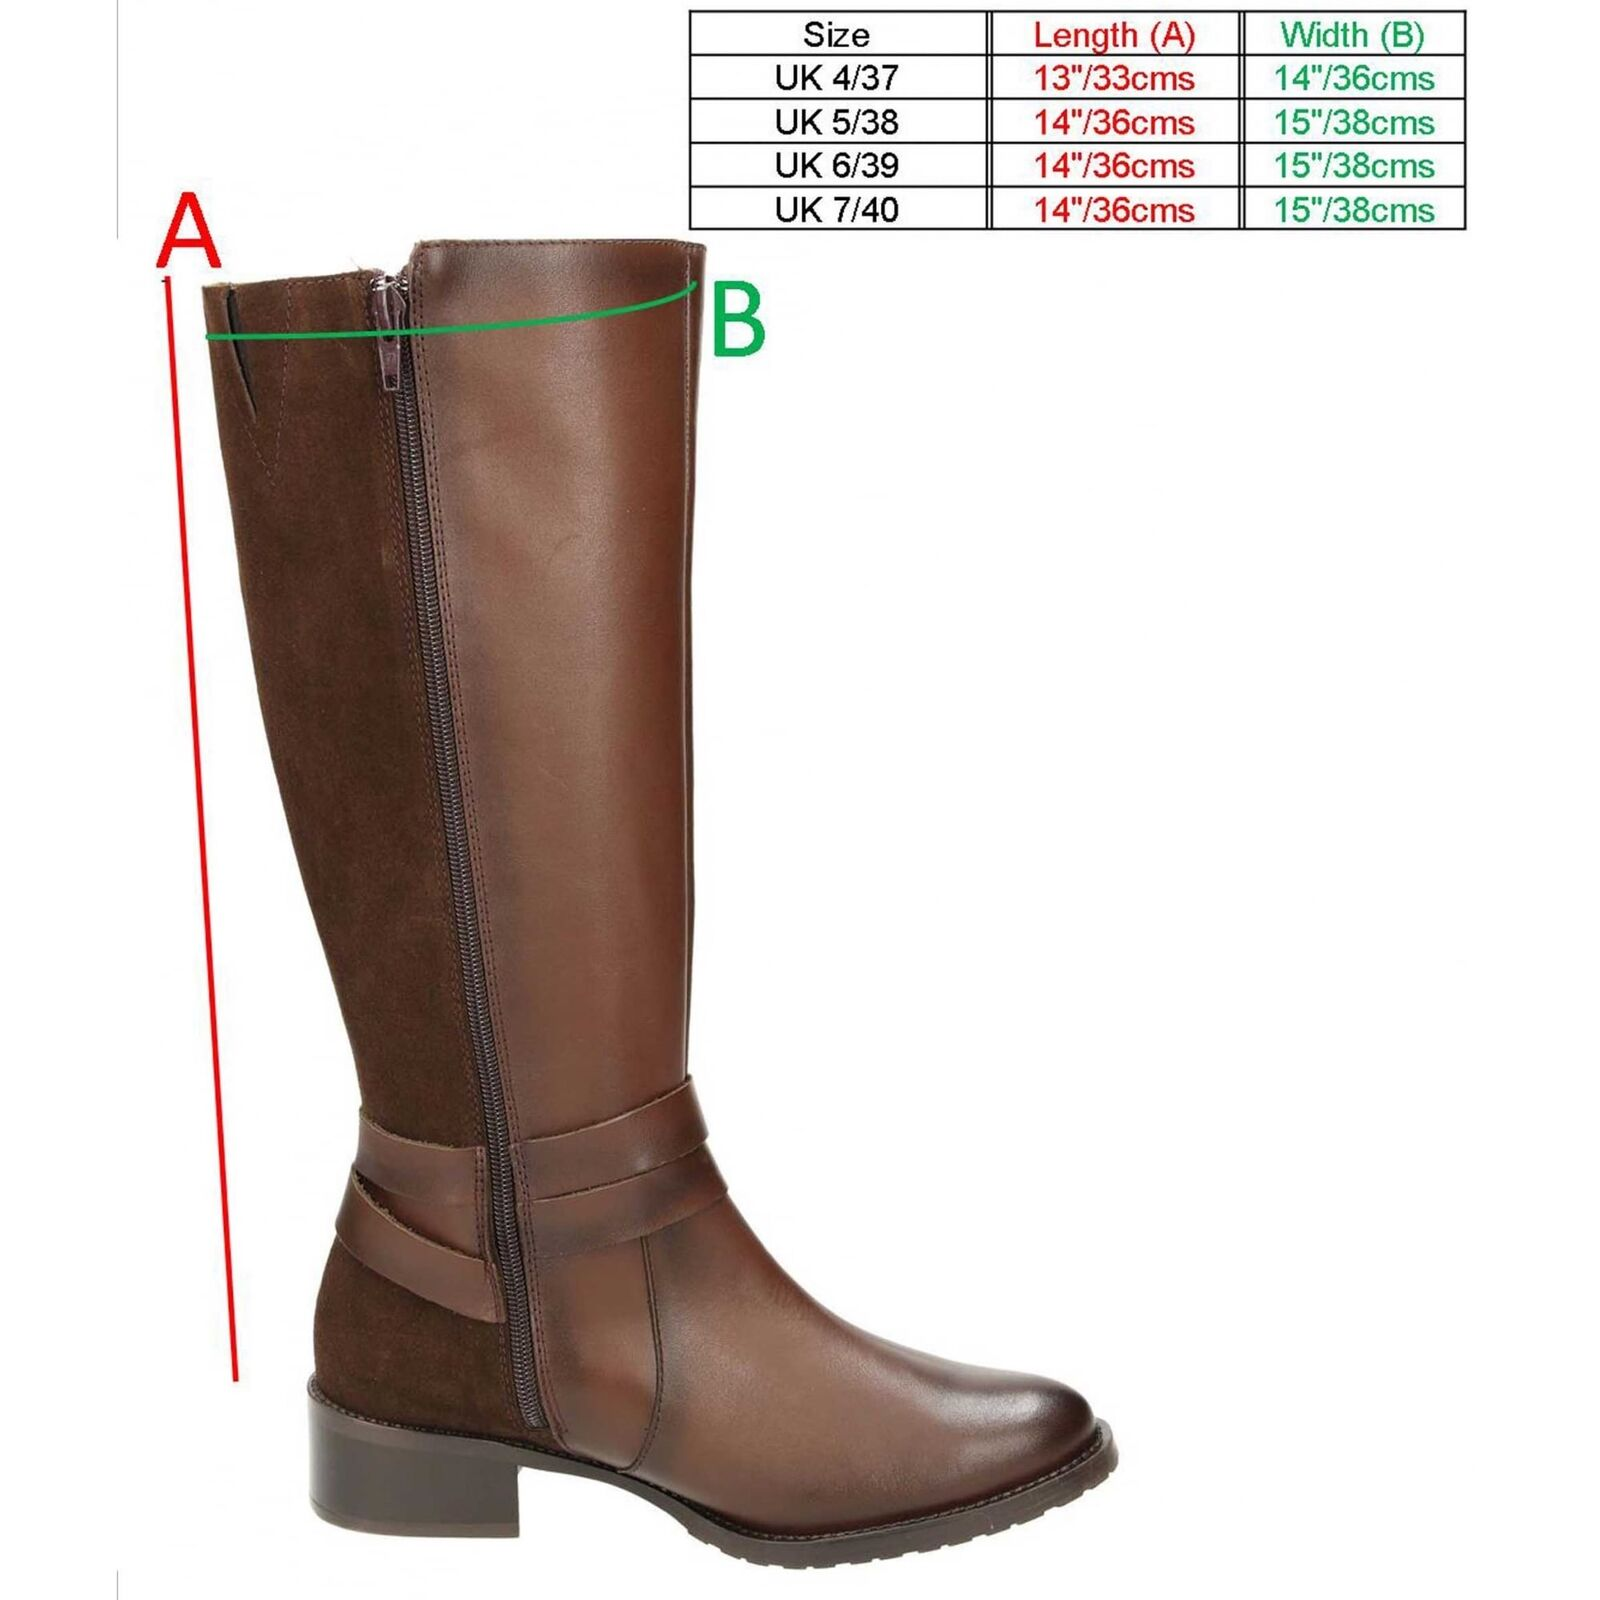 Carmela Suede Leather Flat Knee Riding High Boots Style Low Heel High Riding Shoes f86096